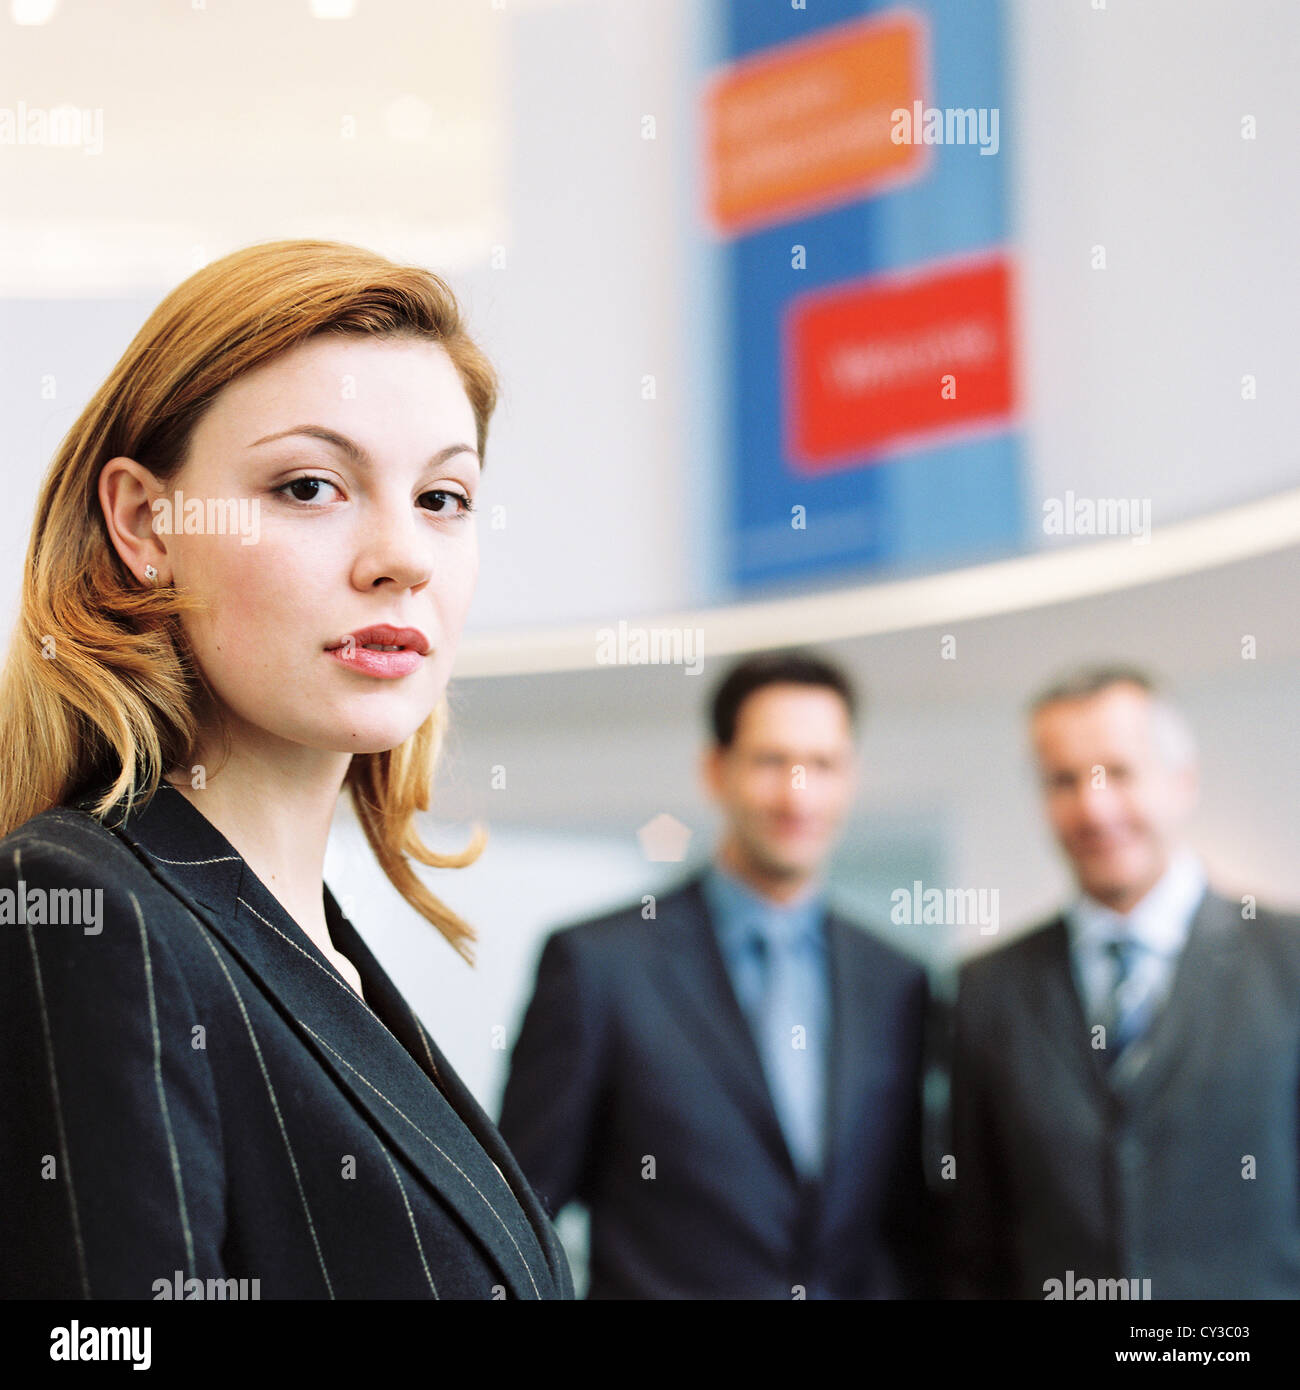 business people License free except ads and outdoor billboards - Stock Image